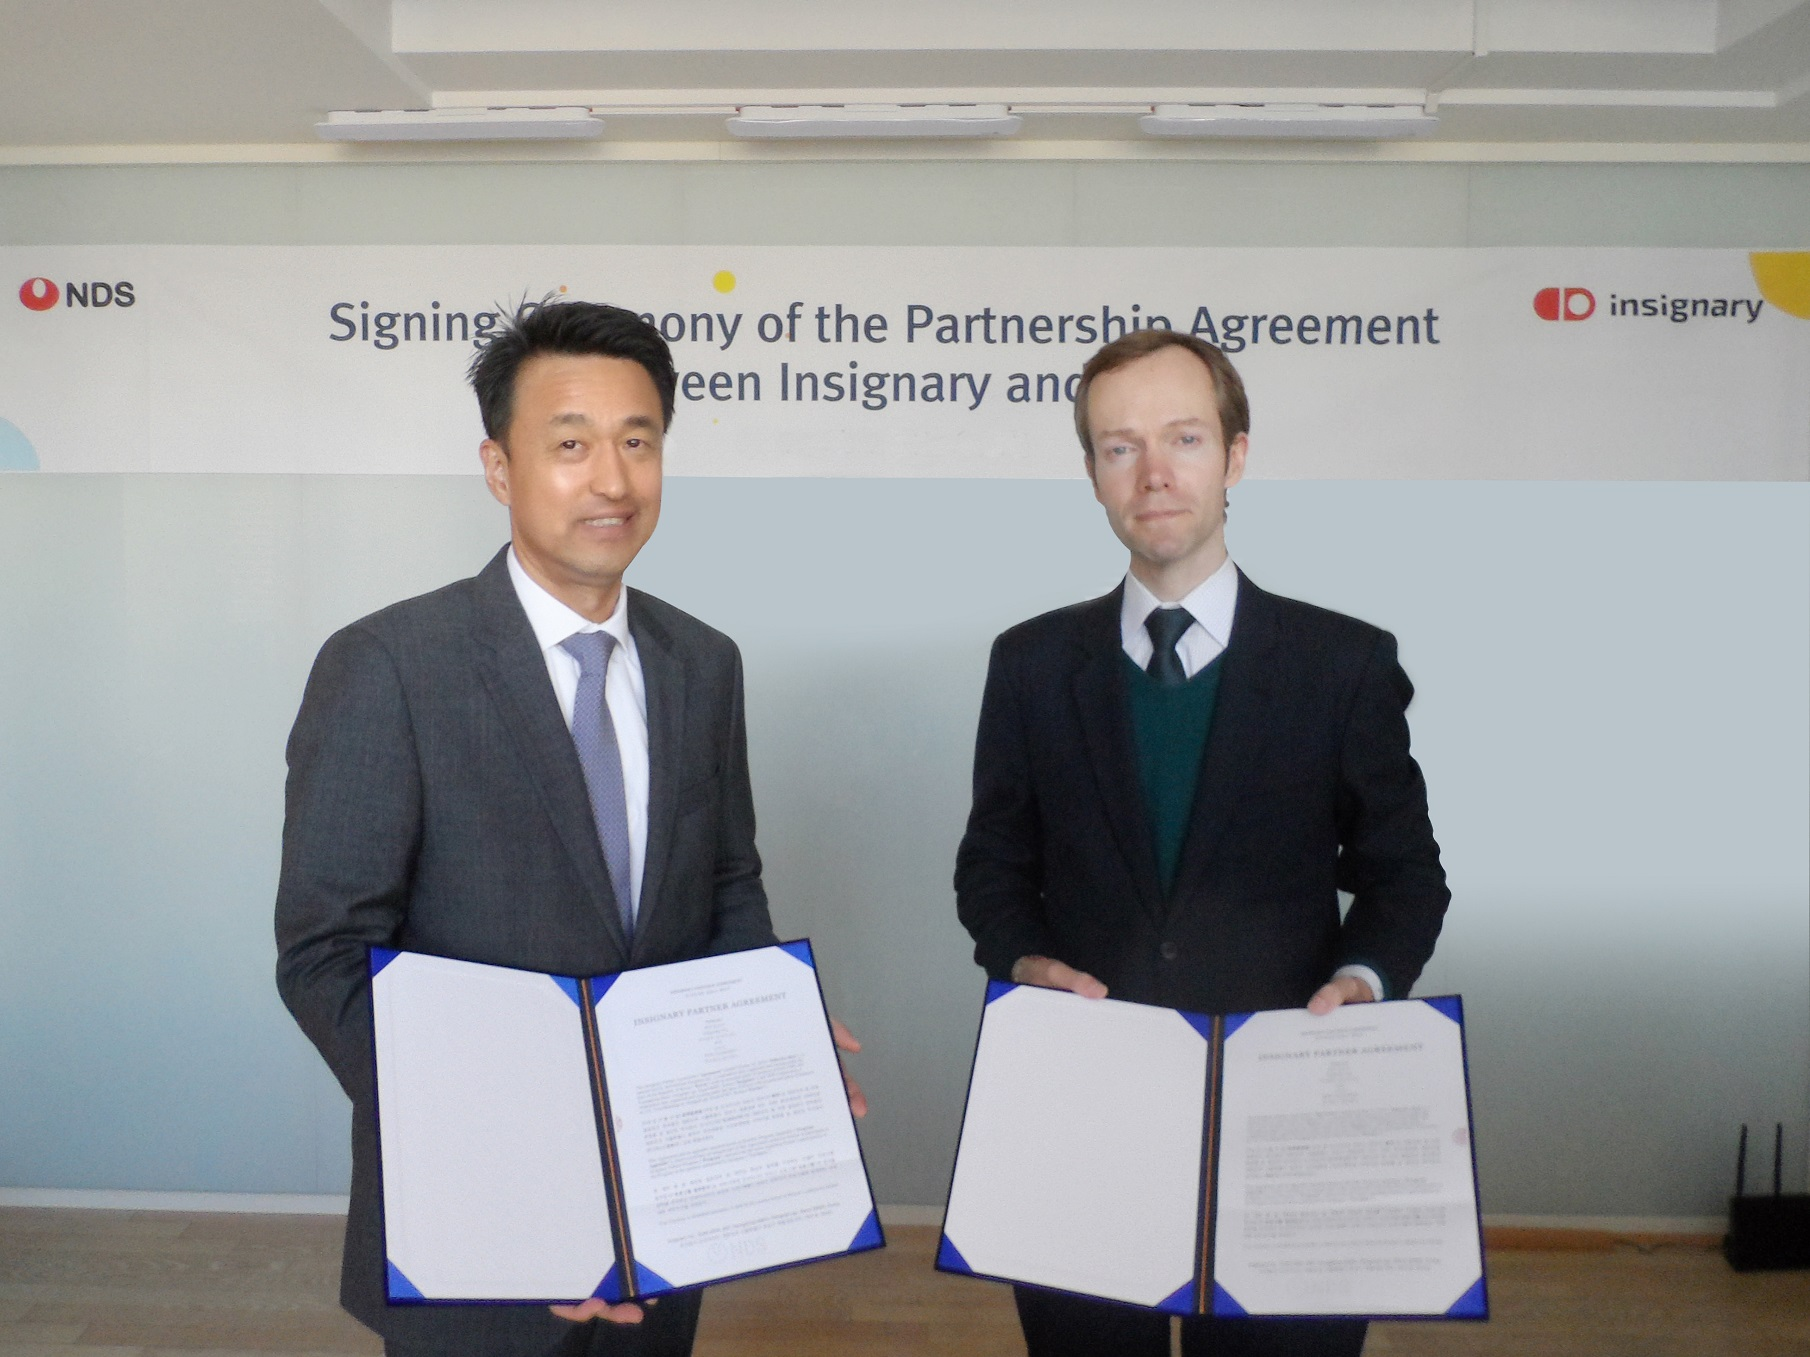 Insignary & NDS signing ceremony